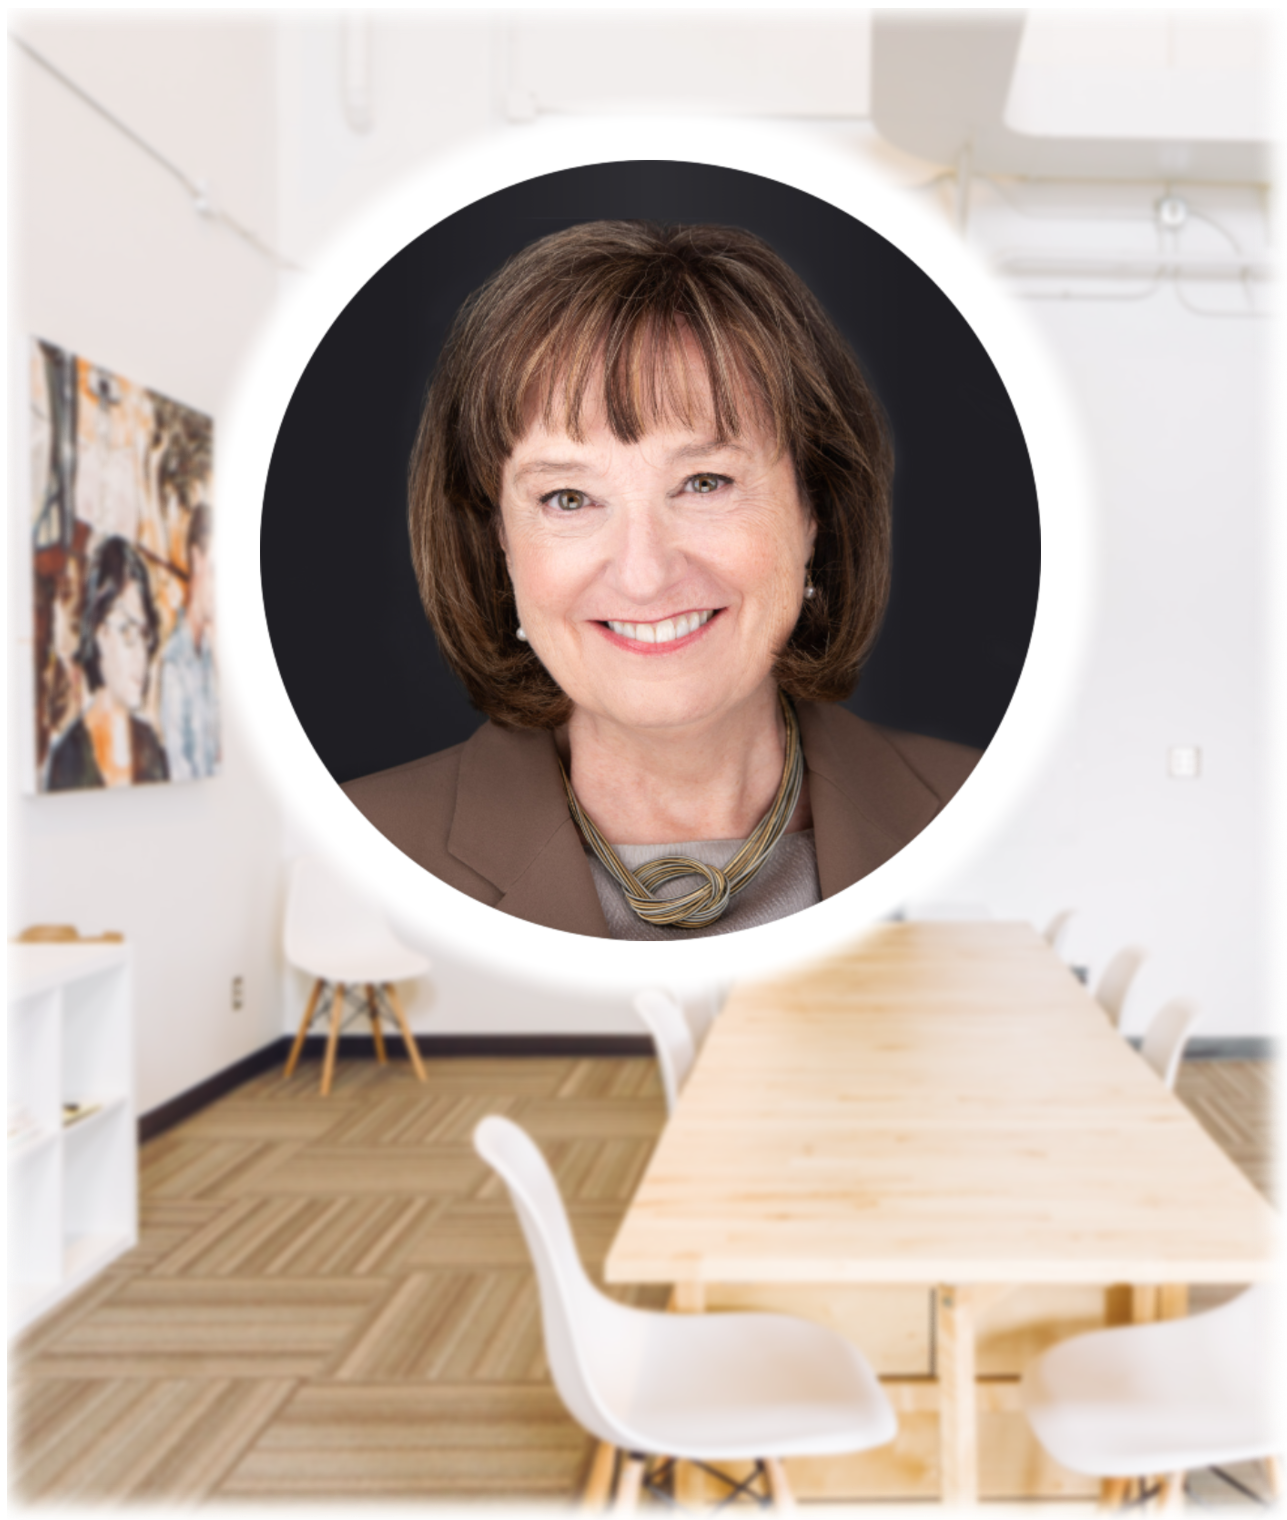 Image of conference table and chairs with an image of Diane Darling.